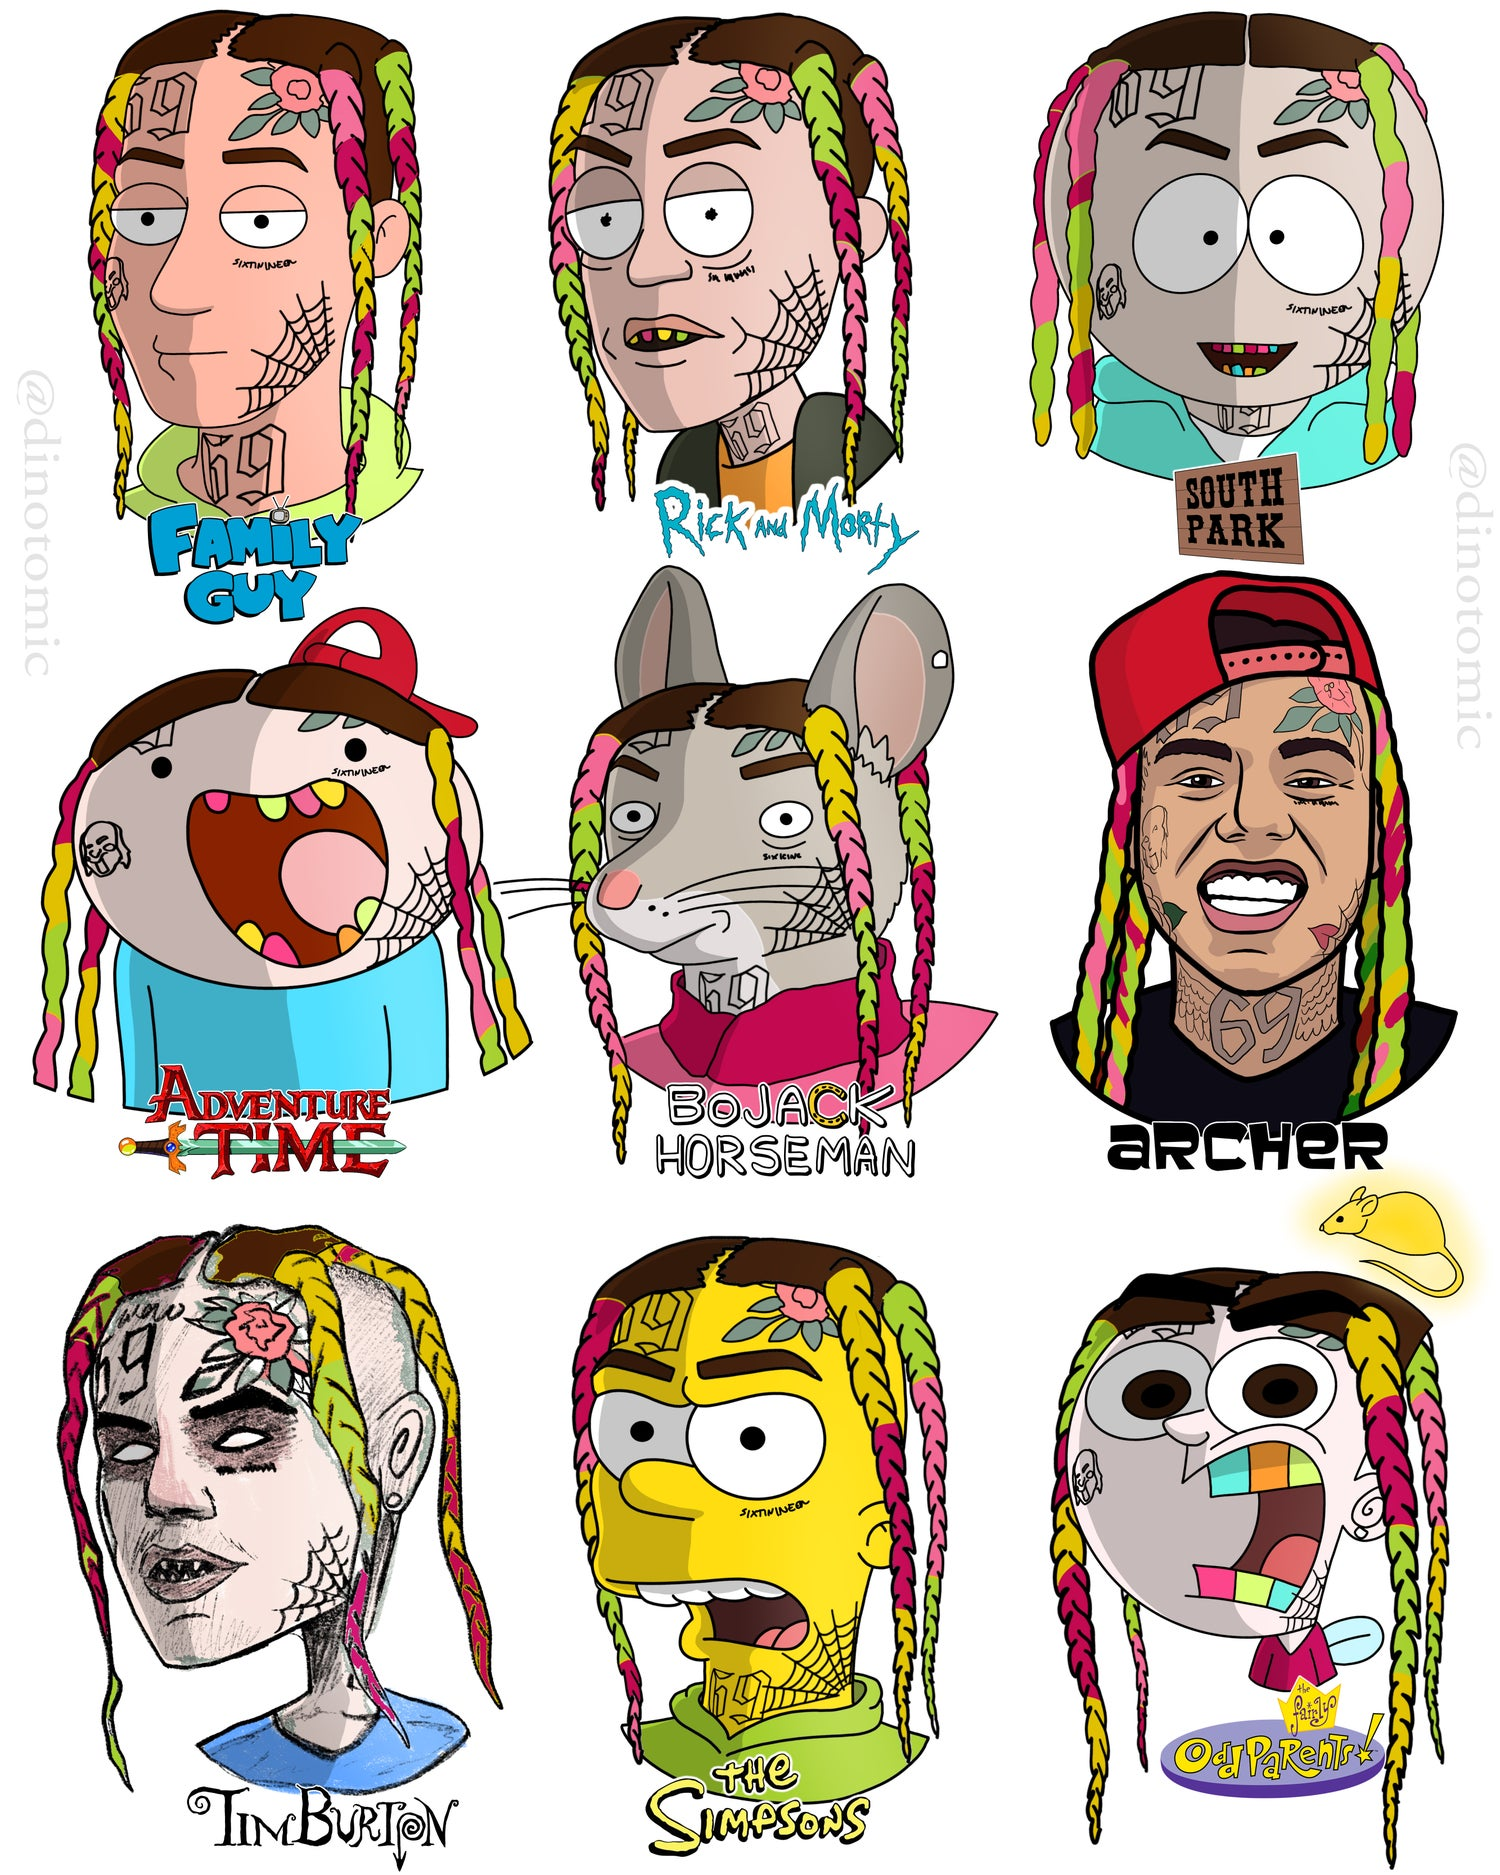 Image of #222 69Tekashi drawn in 9 styles